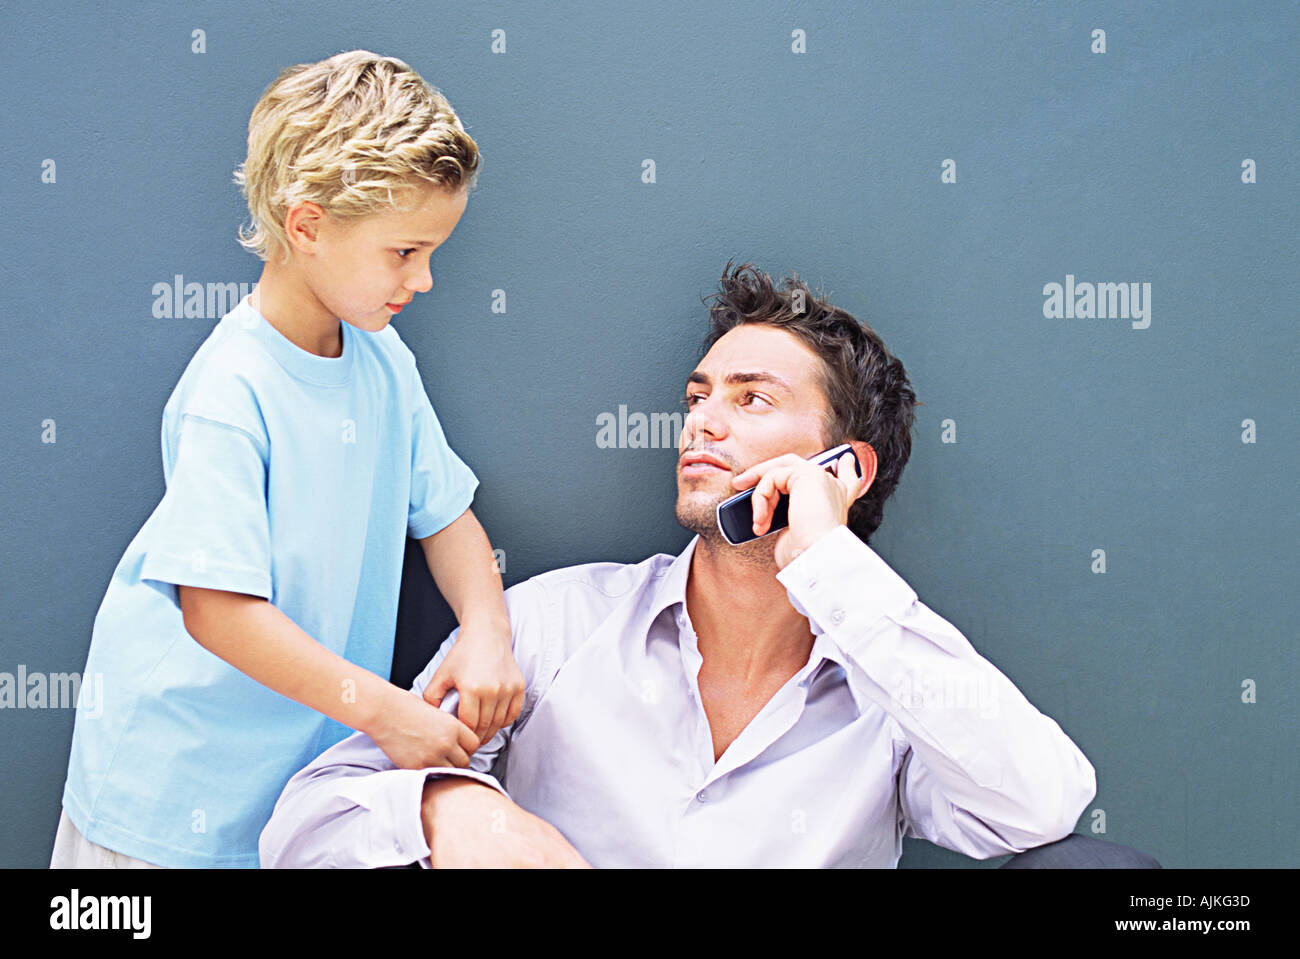 Boy trying to get father's attention - Stock Image